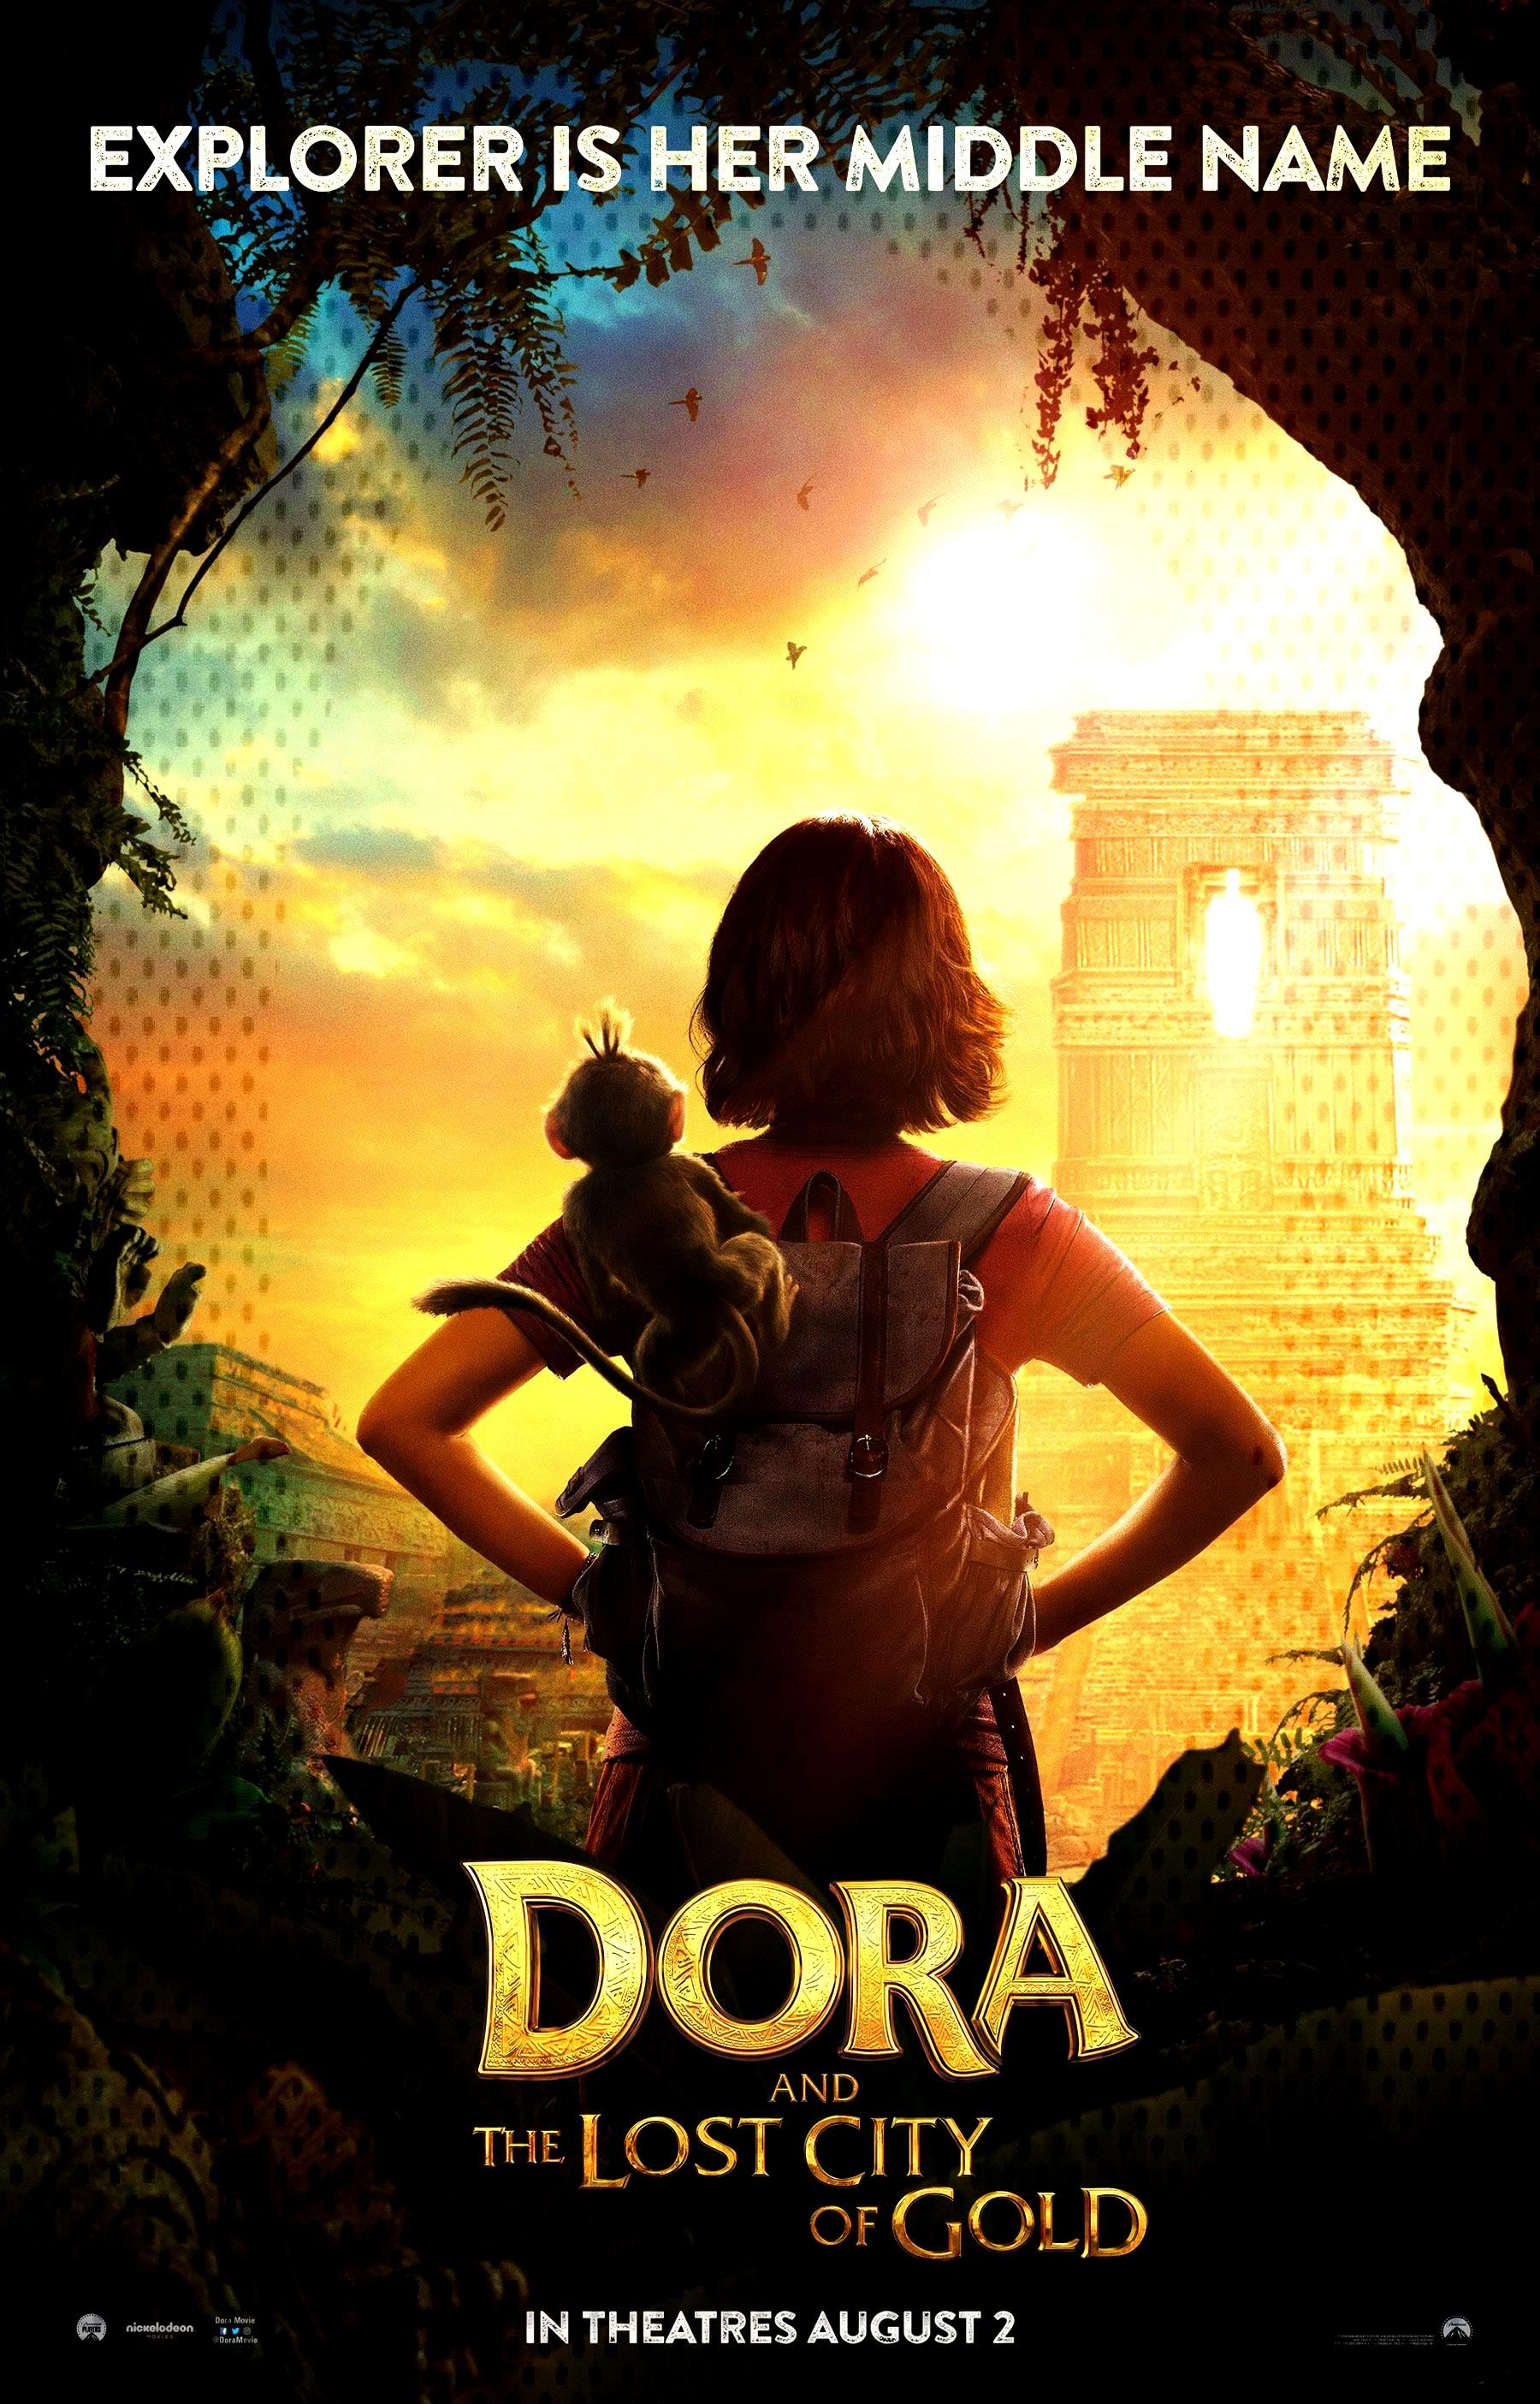 Dora the Explorerlive-action movie posters explore theLost City of Gold